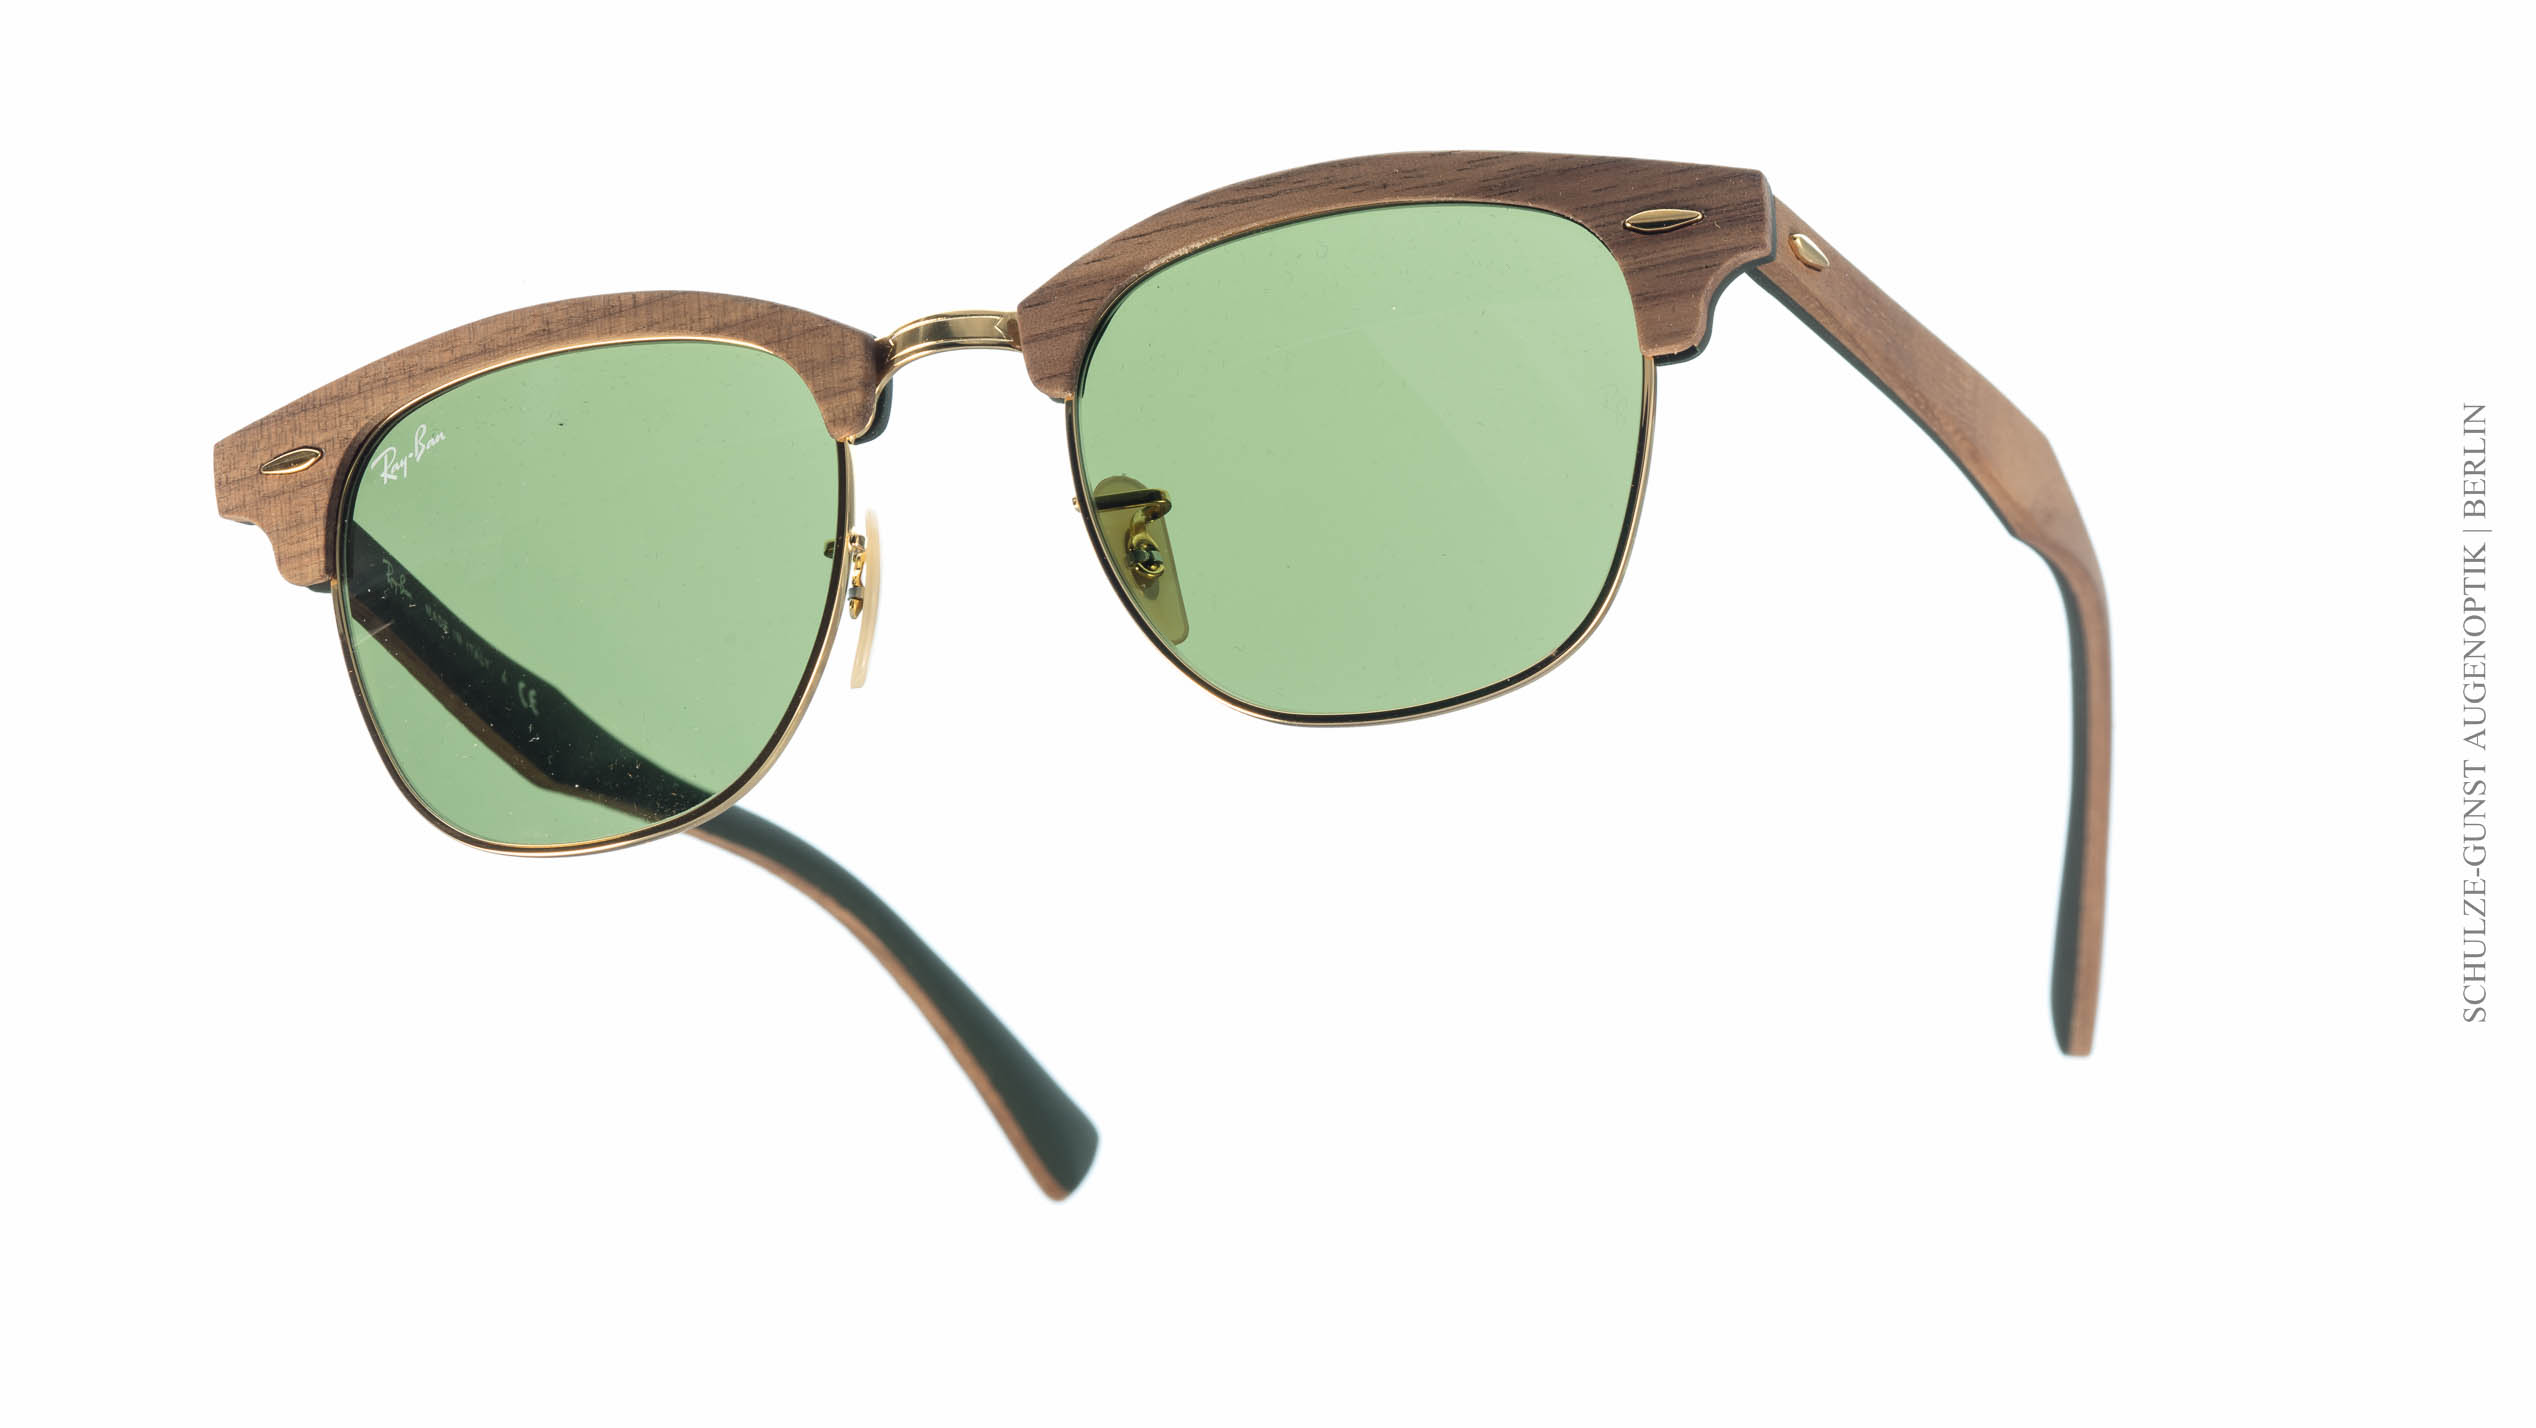 ray ban sonnenbrillen optiker berlin